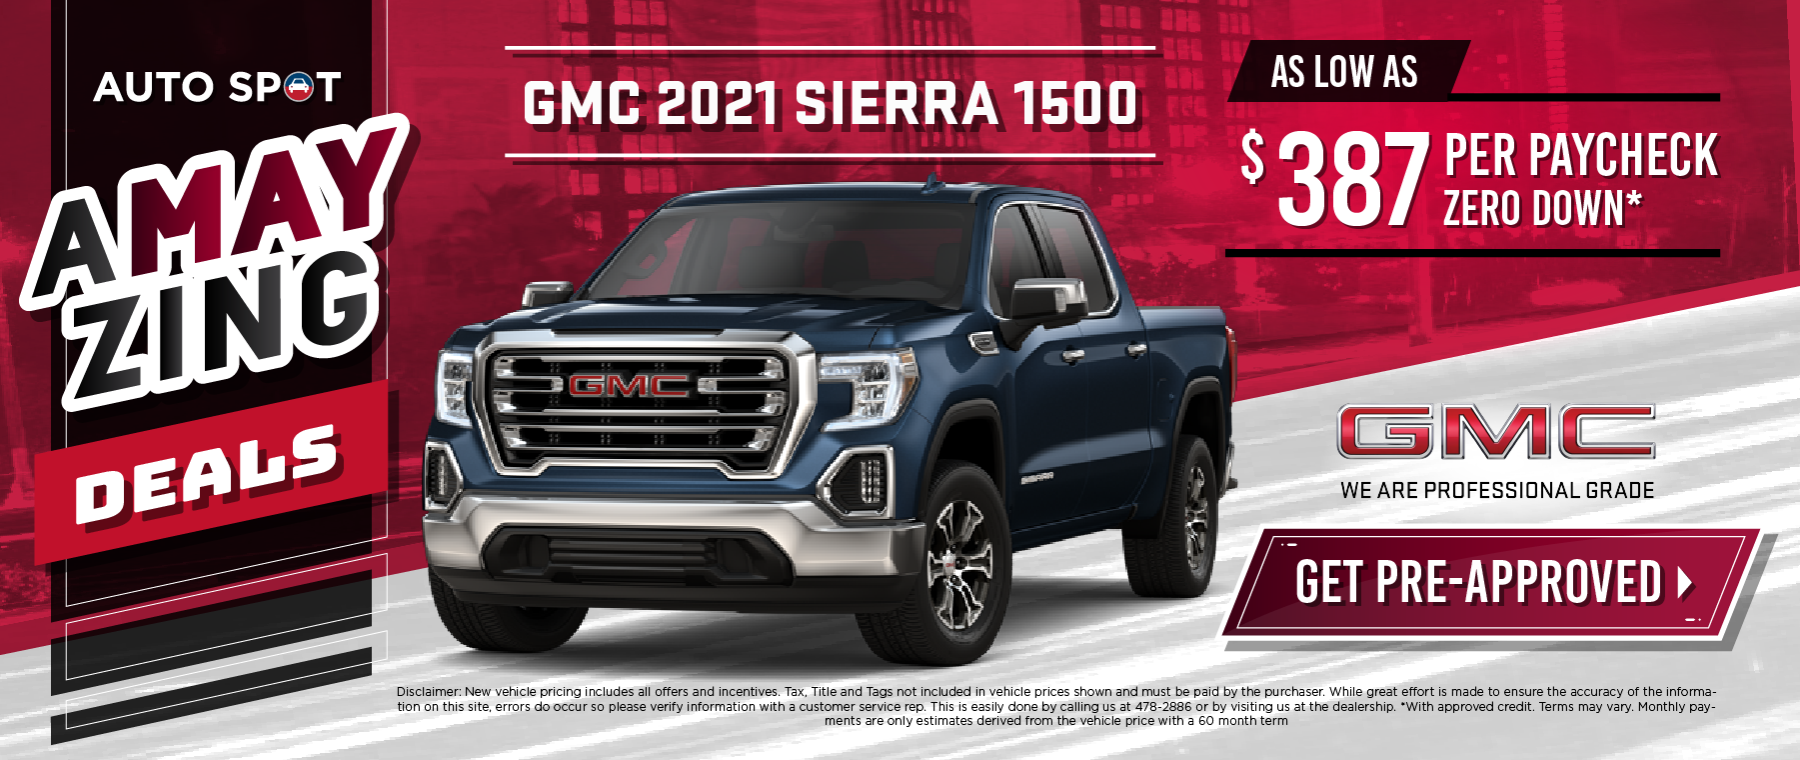 RED GMC Ads-Amayzing_Web Banner 1800 x 760 px